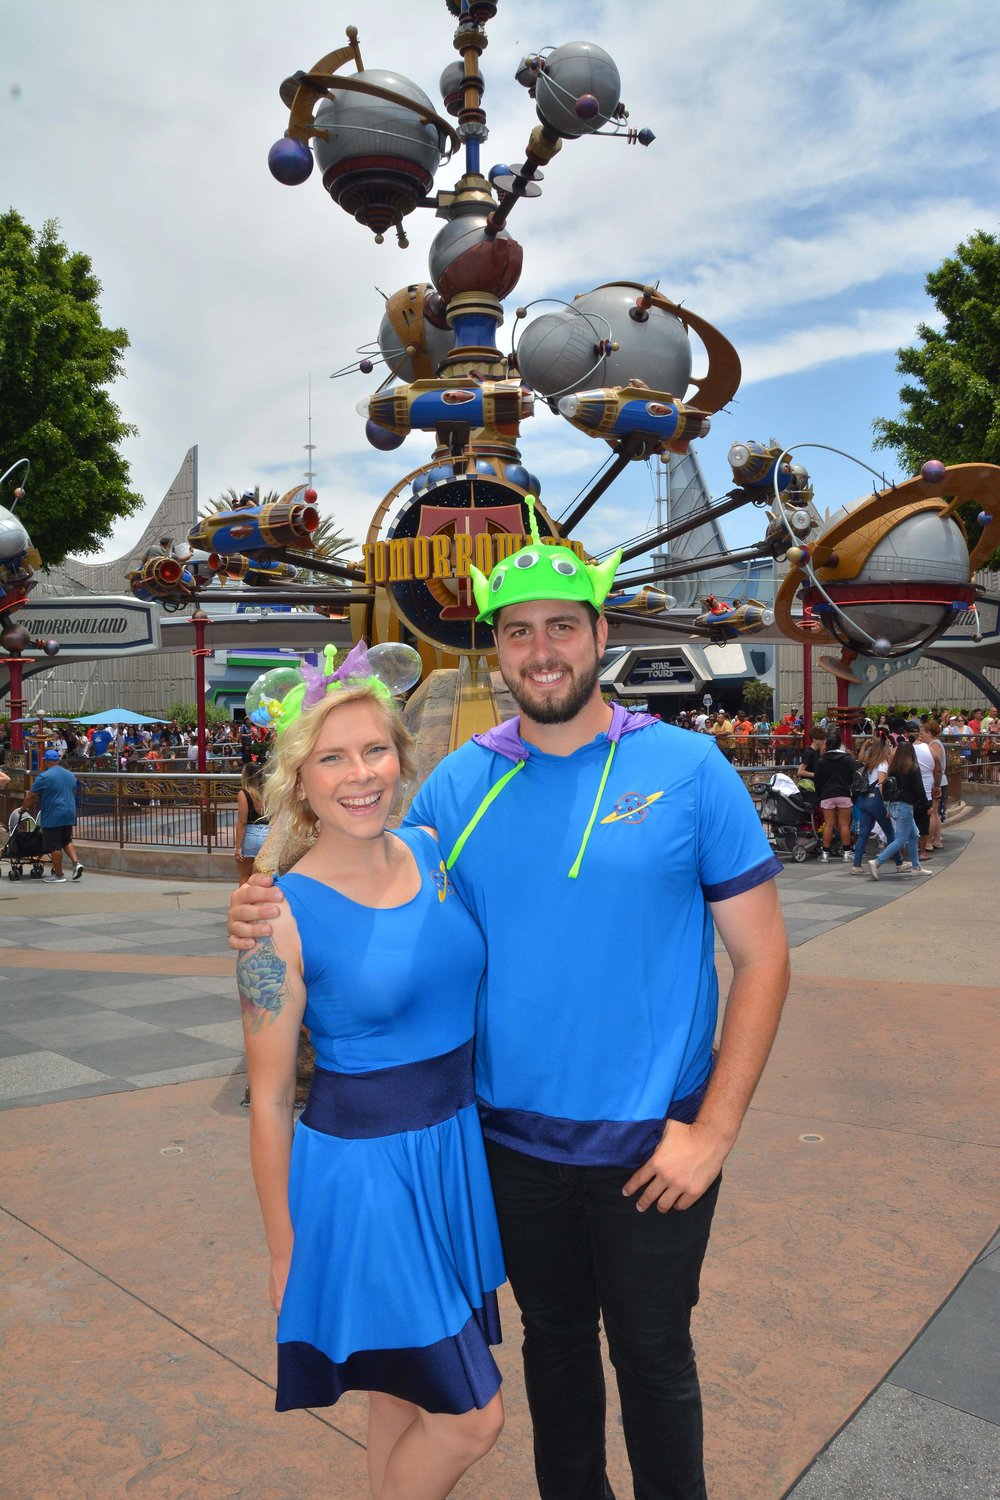 PhotoPass_Visiting_Disneyland_Park_8236814299.jpg